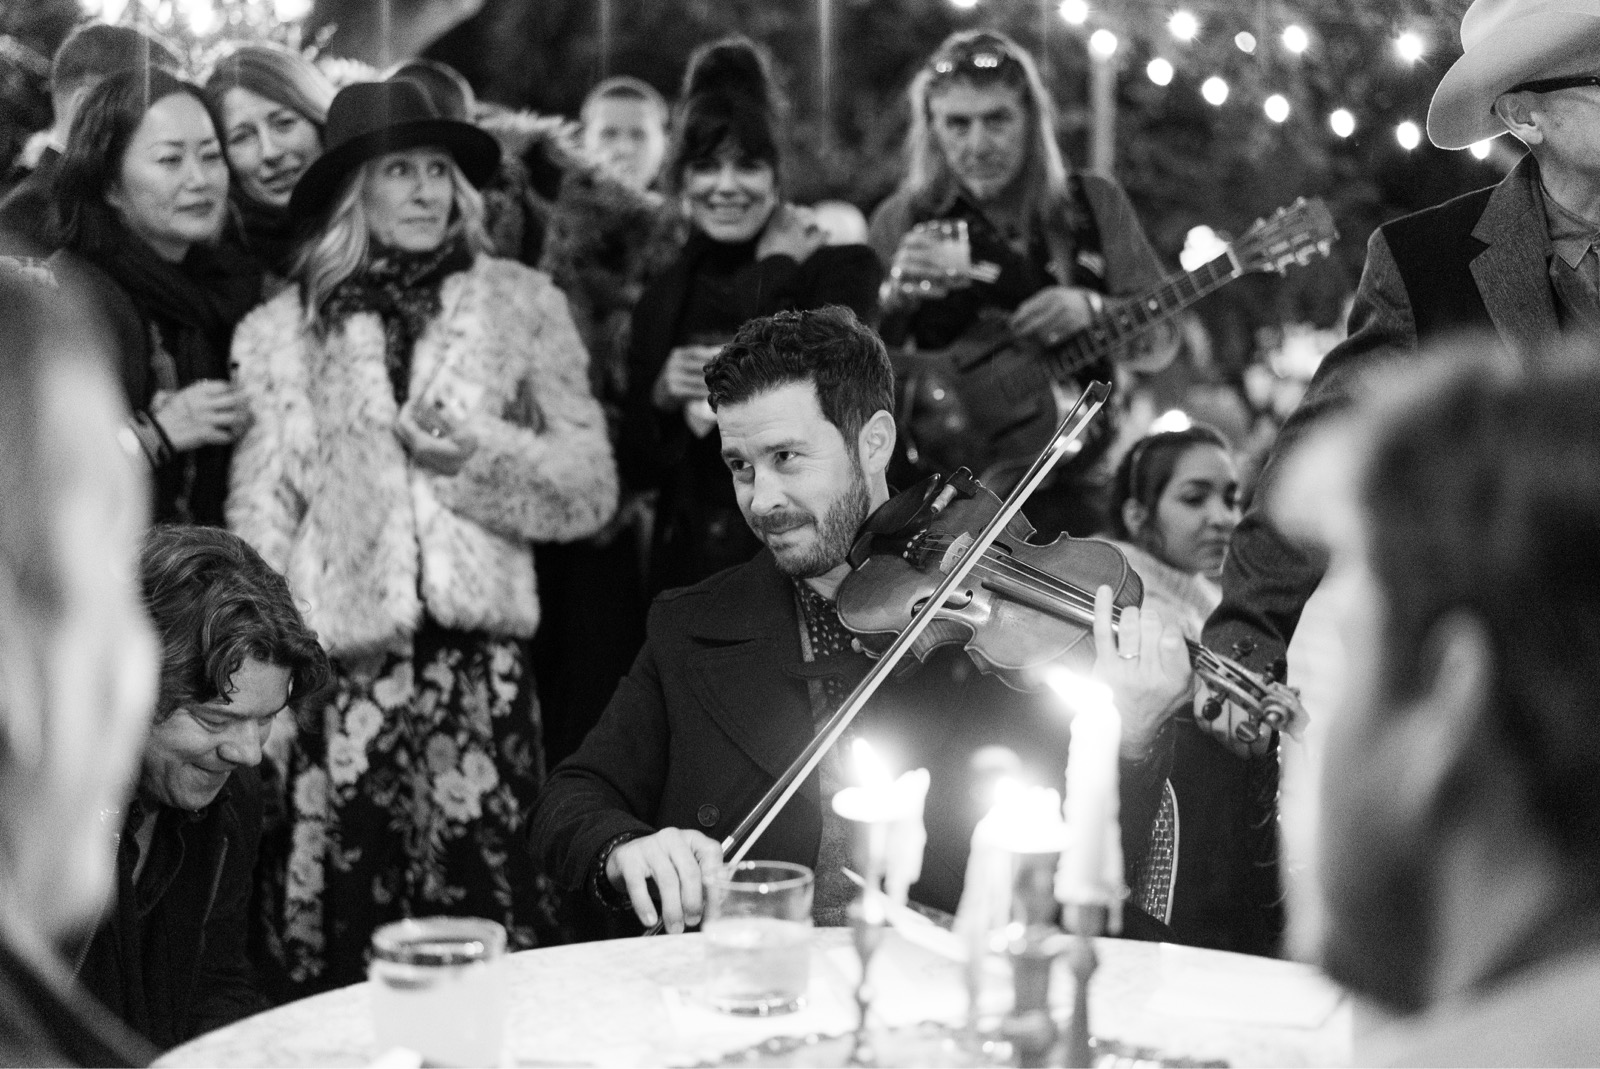 Man smiling and playing a violin while sitting at a dining table with onlookers